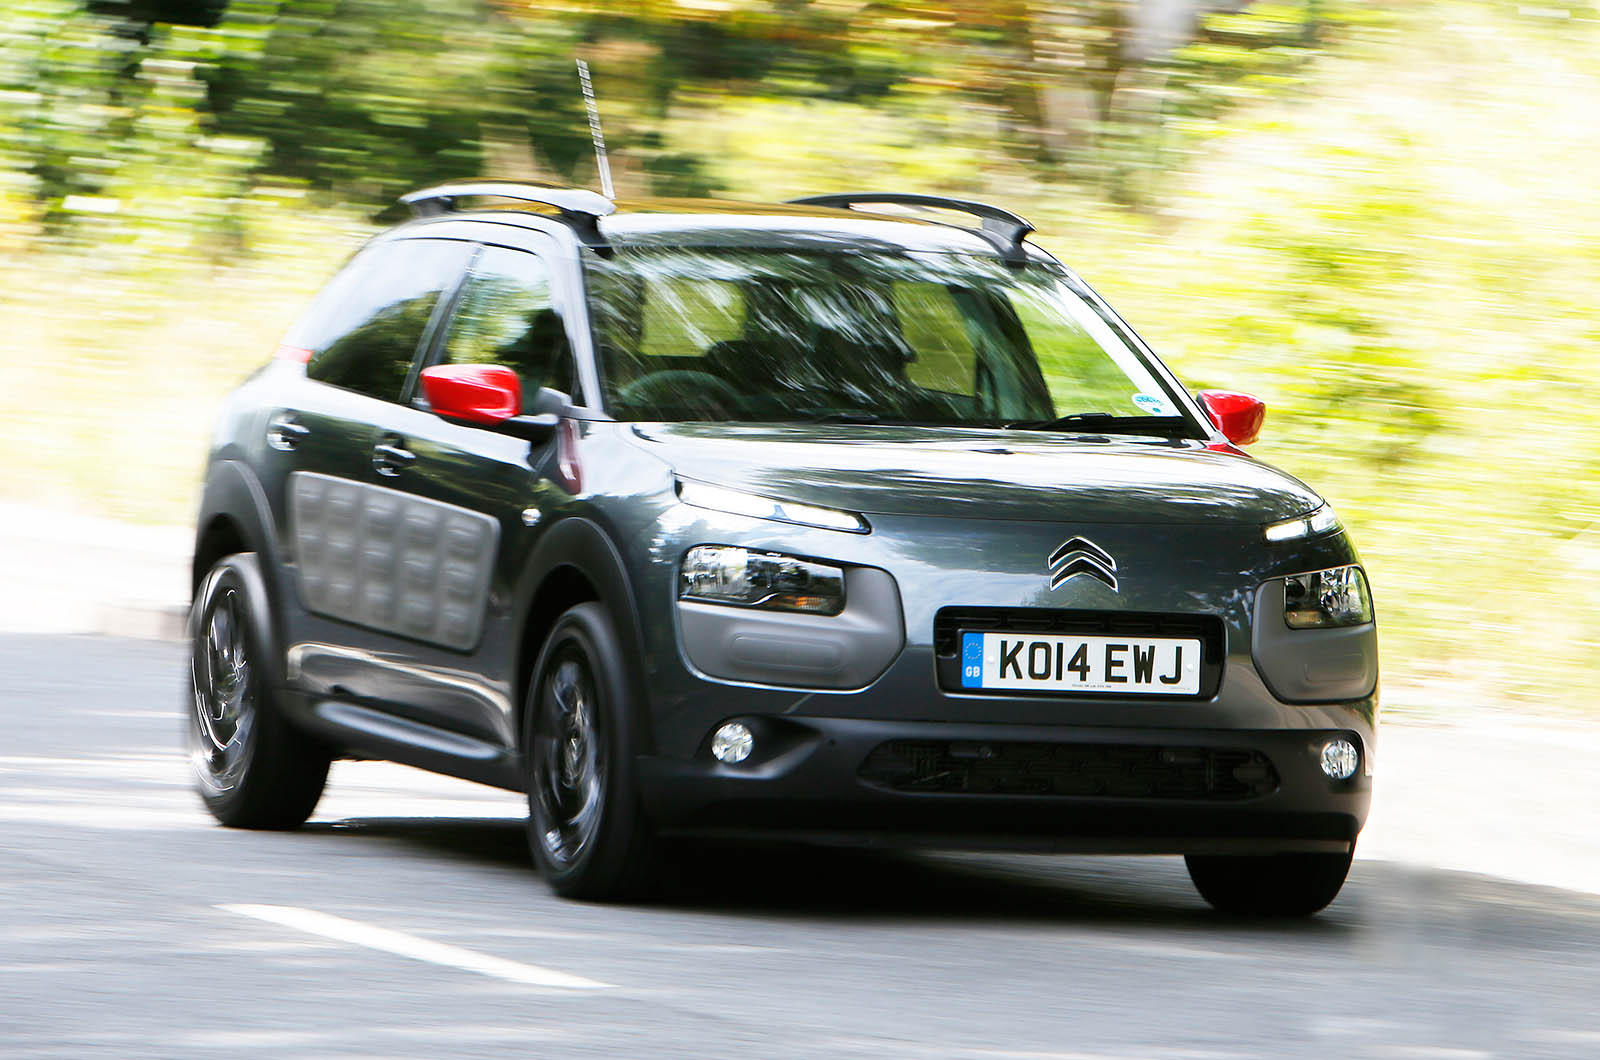 citroen c4 cactus puretech 110 flair uk first drive. Black Bedroom Furniture Sets. Home Design Ideas